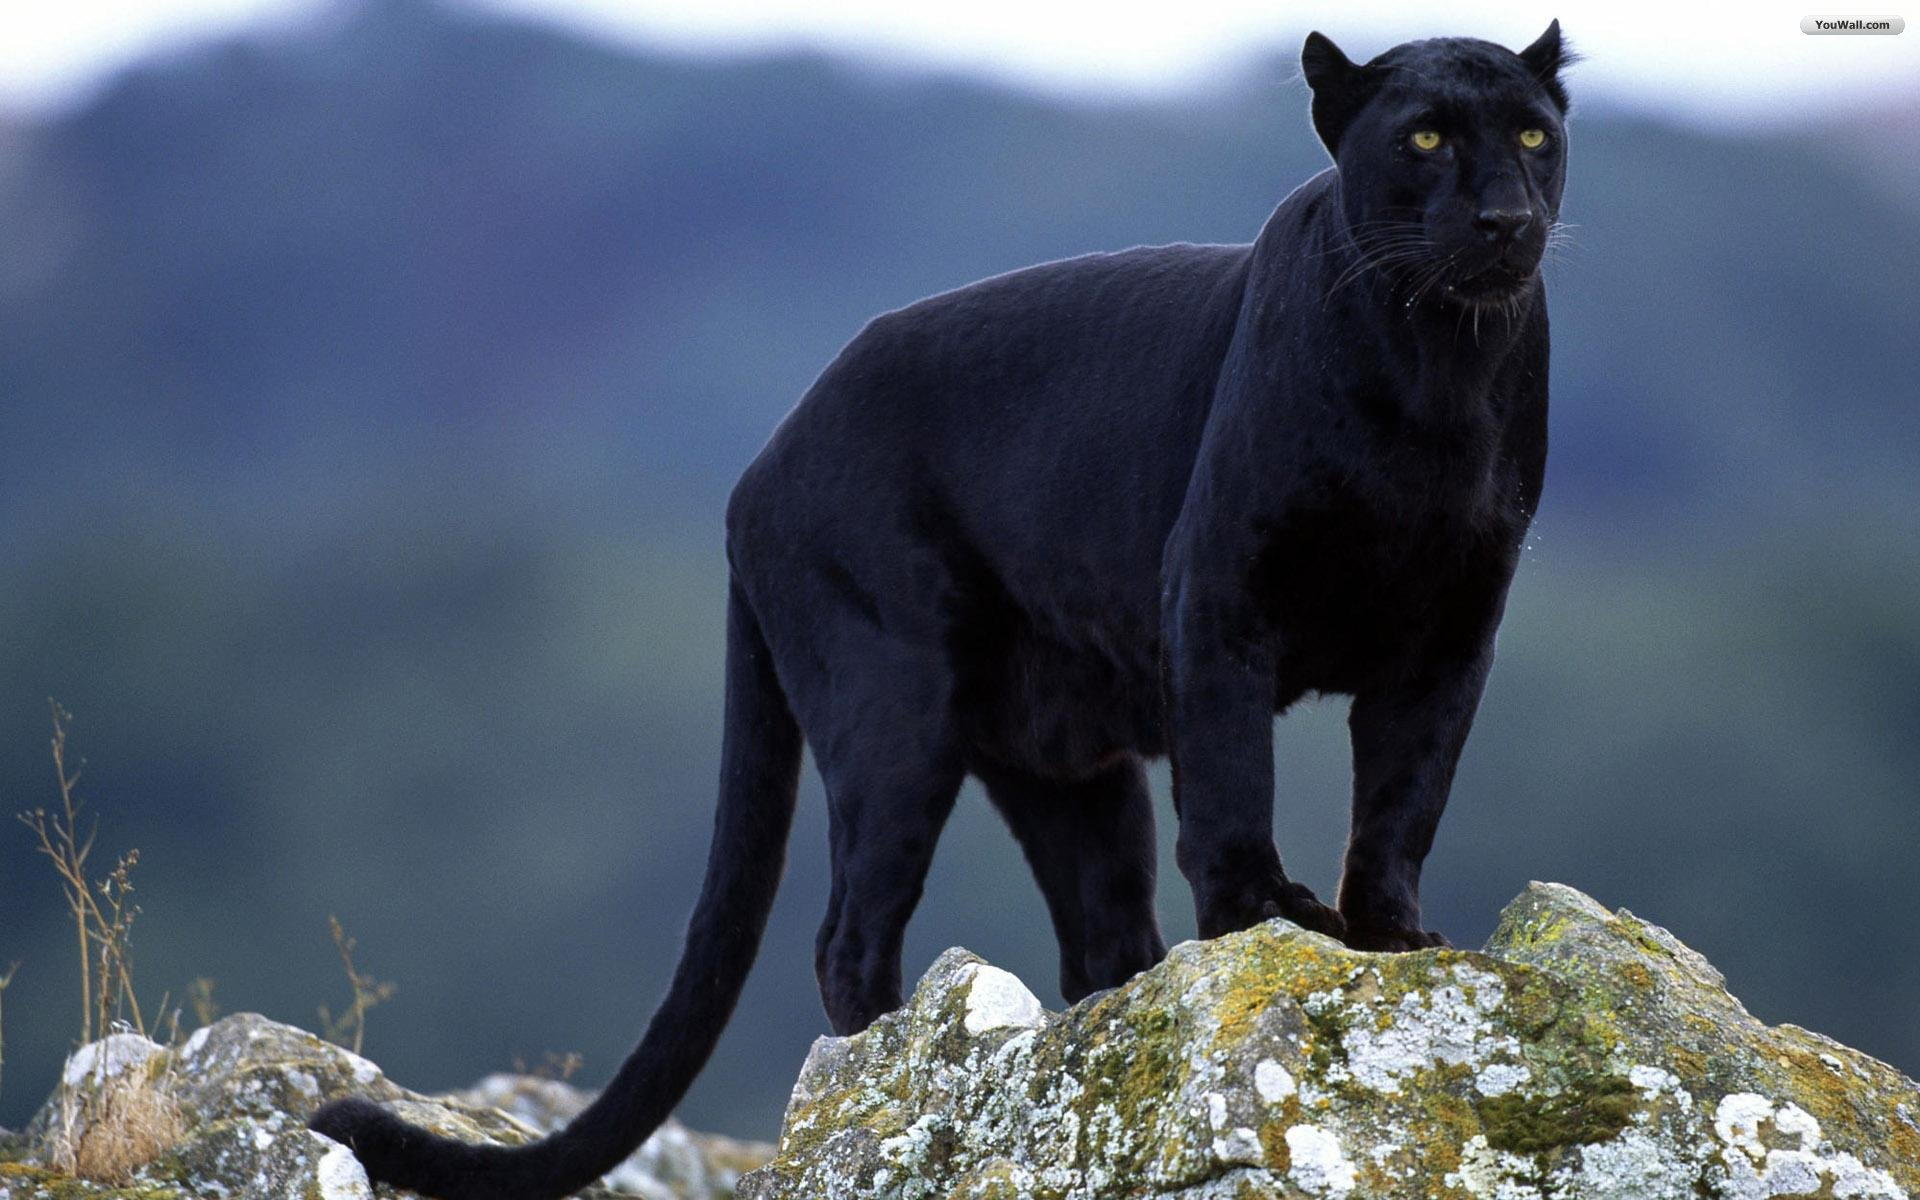 Black Jaguar Animal Wallpaper For Desktop